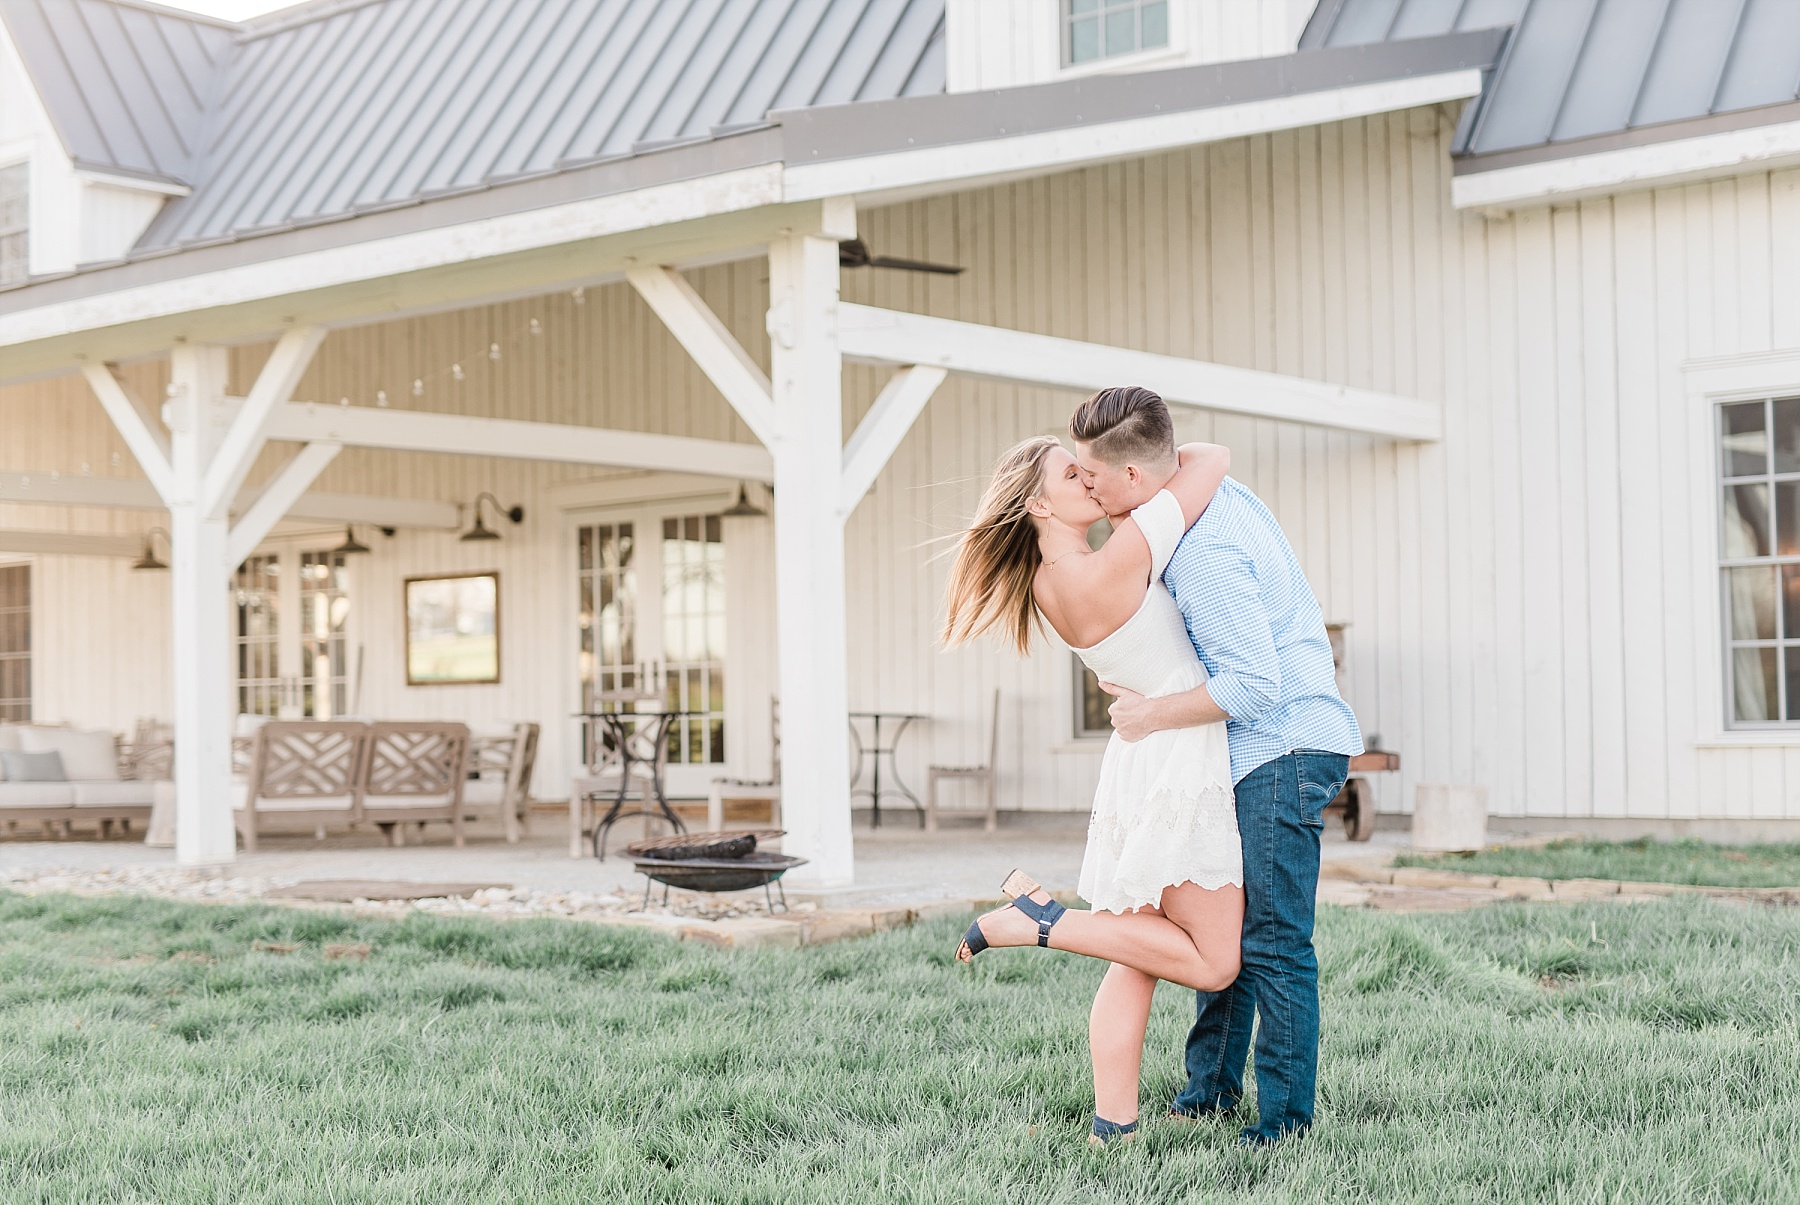 Spring Sunset Engagement Session with High School Sweethearts and Golden Retriever Puppy at Blue Bell Farm Fayette Missouri by Kelsi Kliethermes Photography_0015.jpg